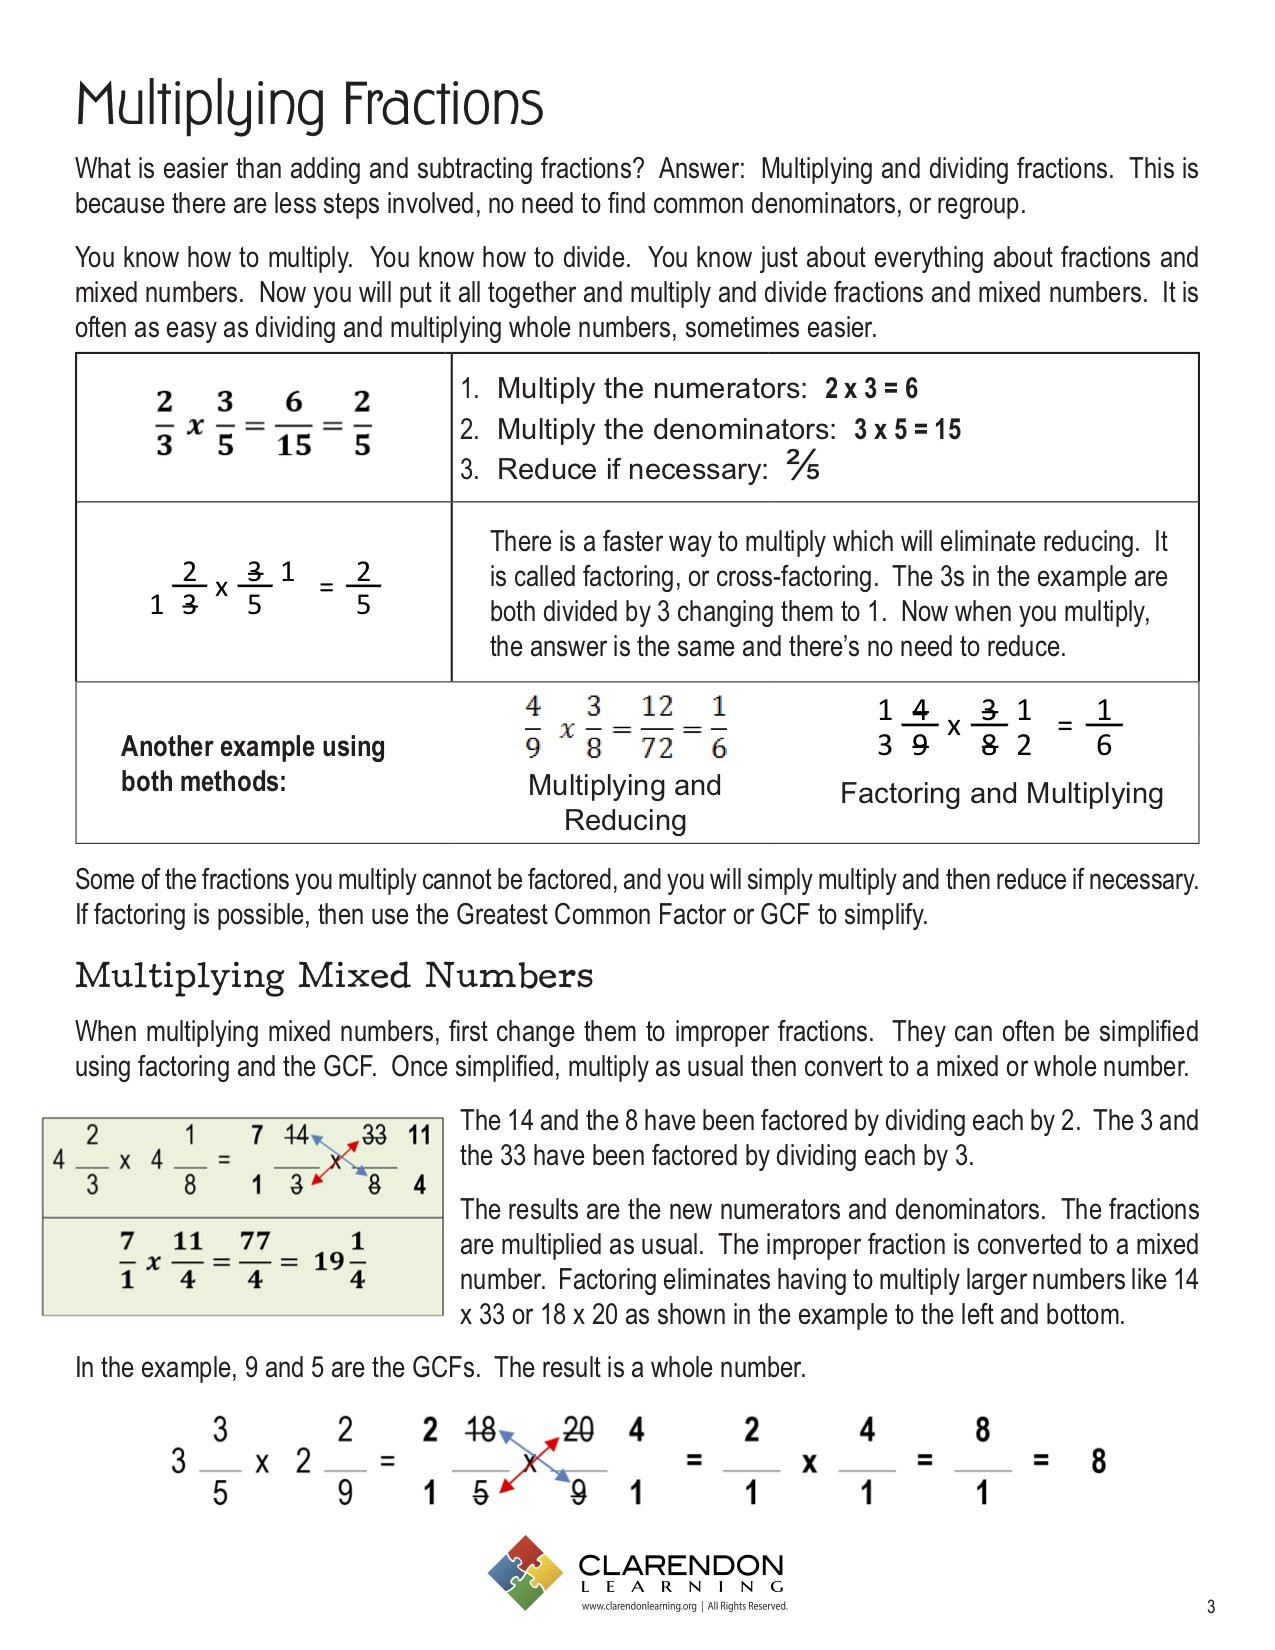 Dividing and Multiplying Fractions Worksheet Multiplying and Dividing Fractions